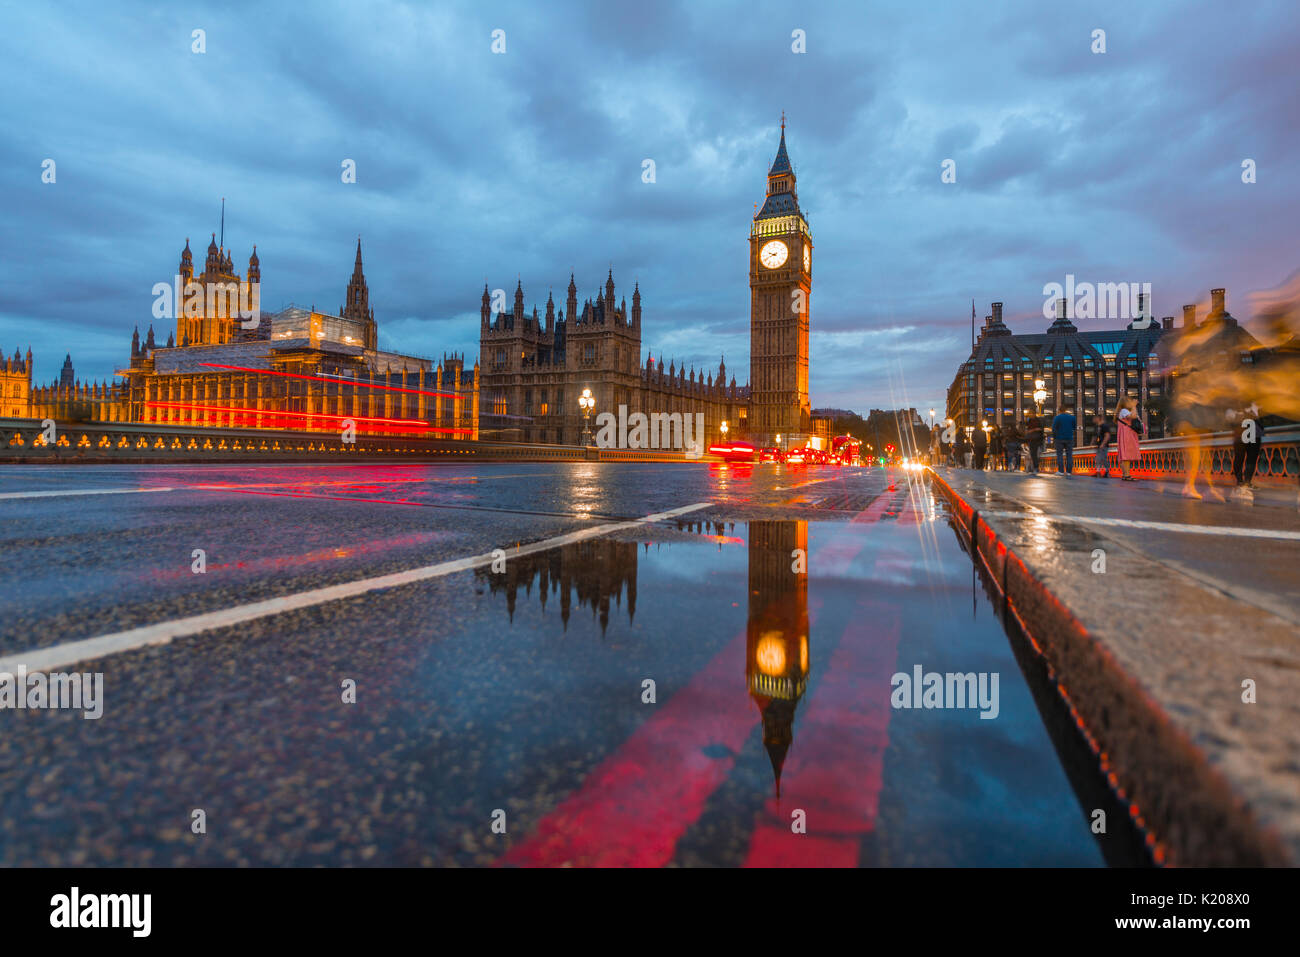 Westminster Bridge, Palace of Westminster, Houses of Parliament with reflection, Big Ben, City of Westminster, London, England - Stock Image